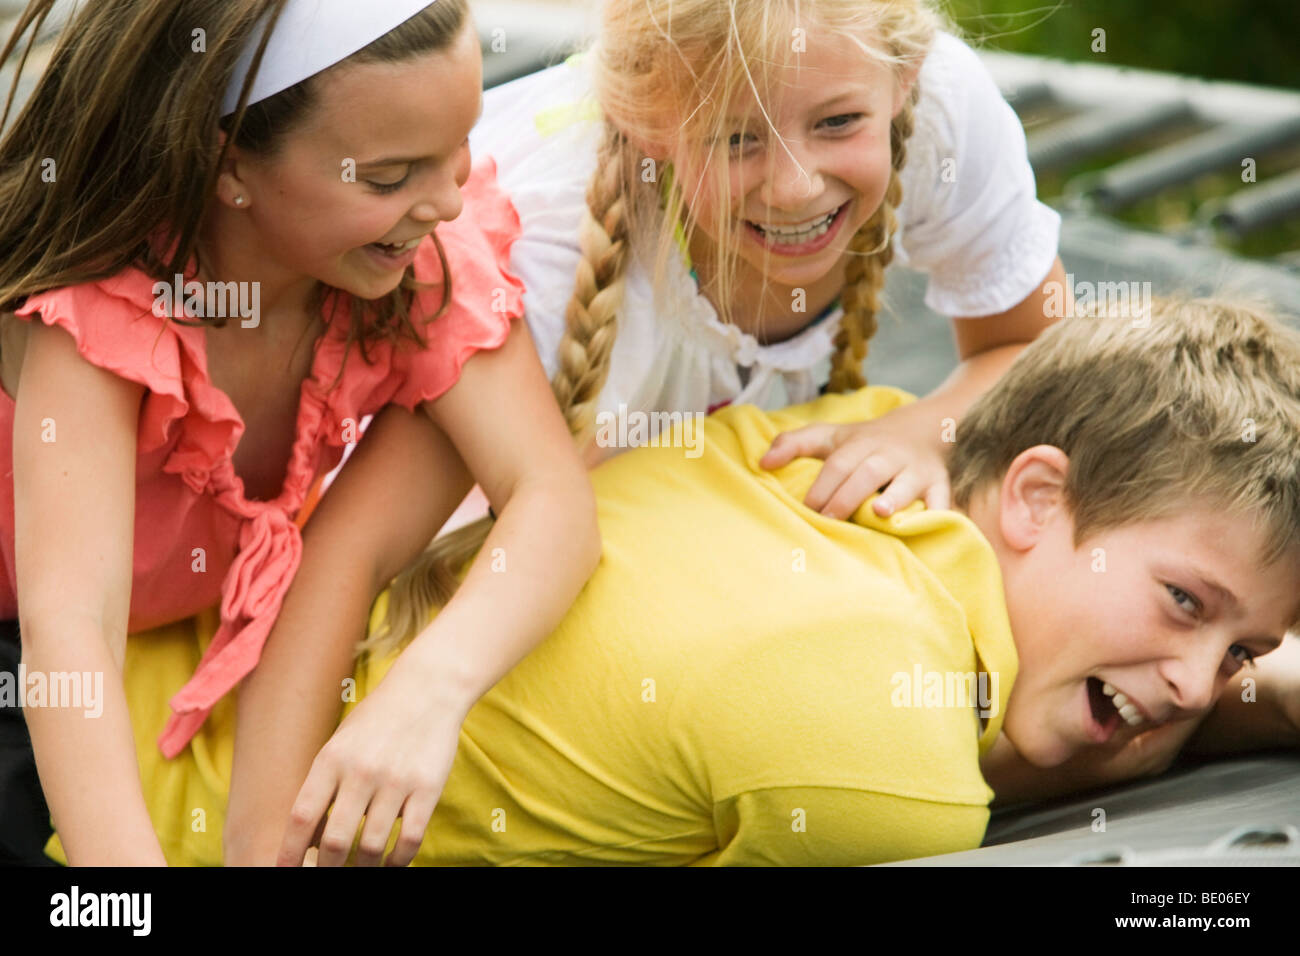 2 Young Girls Wrestling With Young Boy Stock Photo